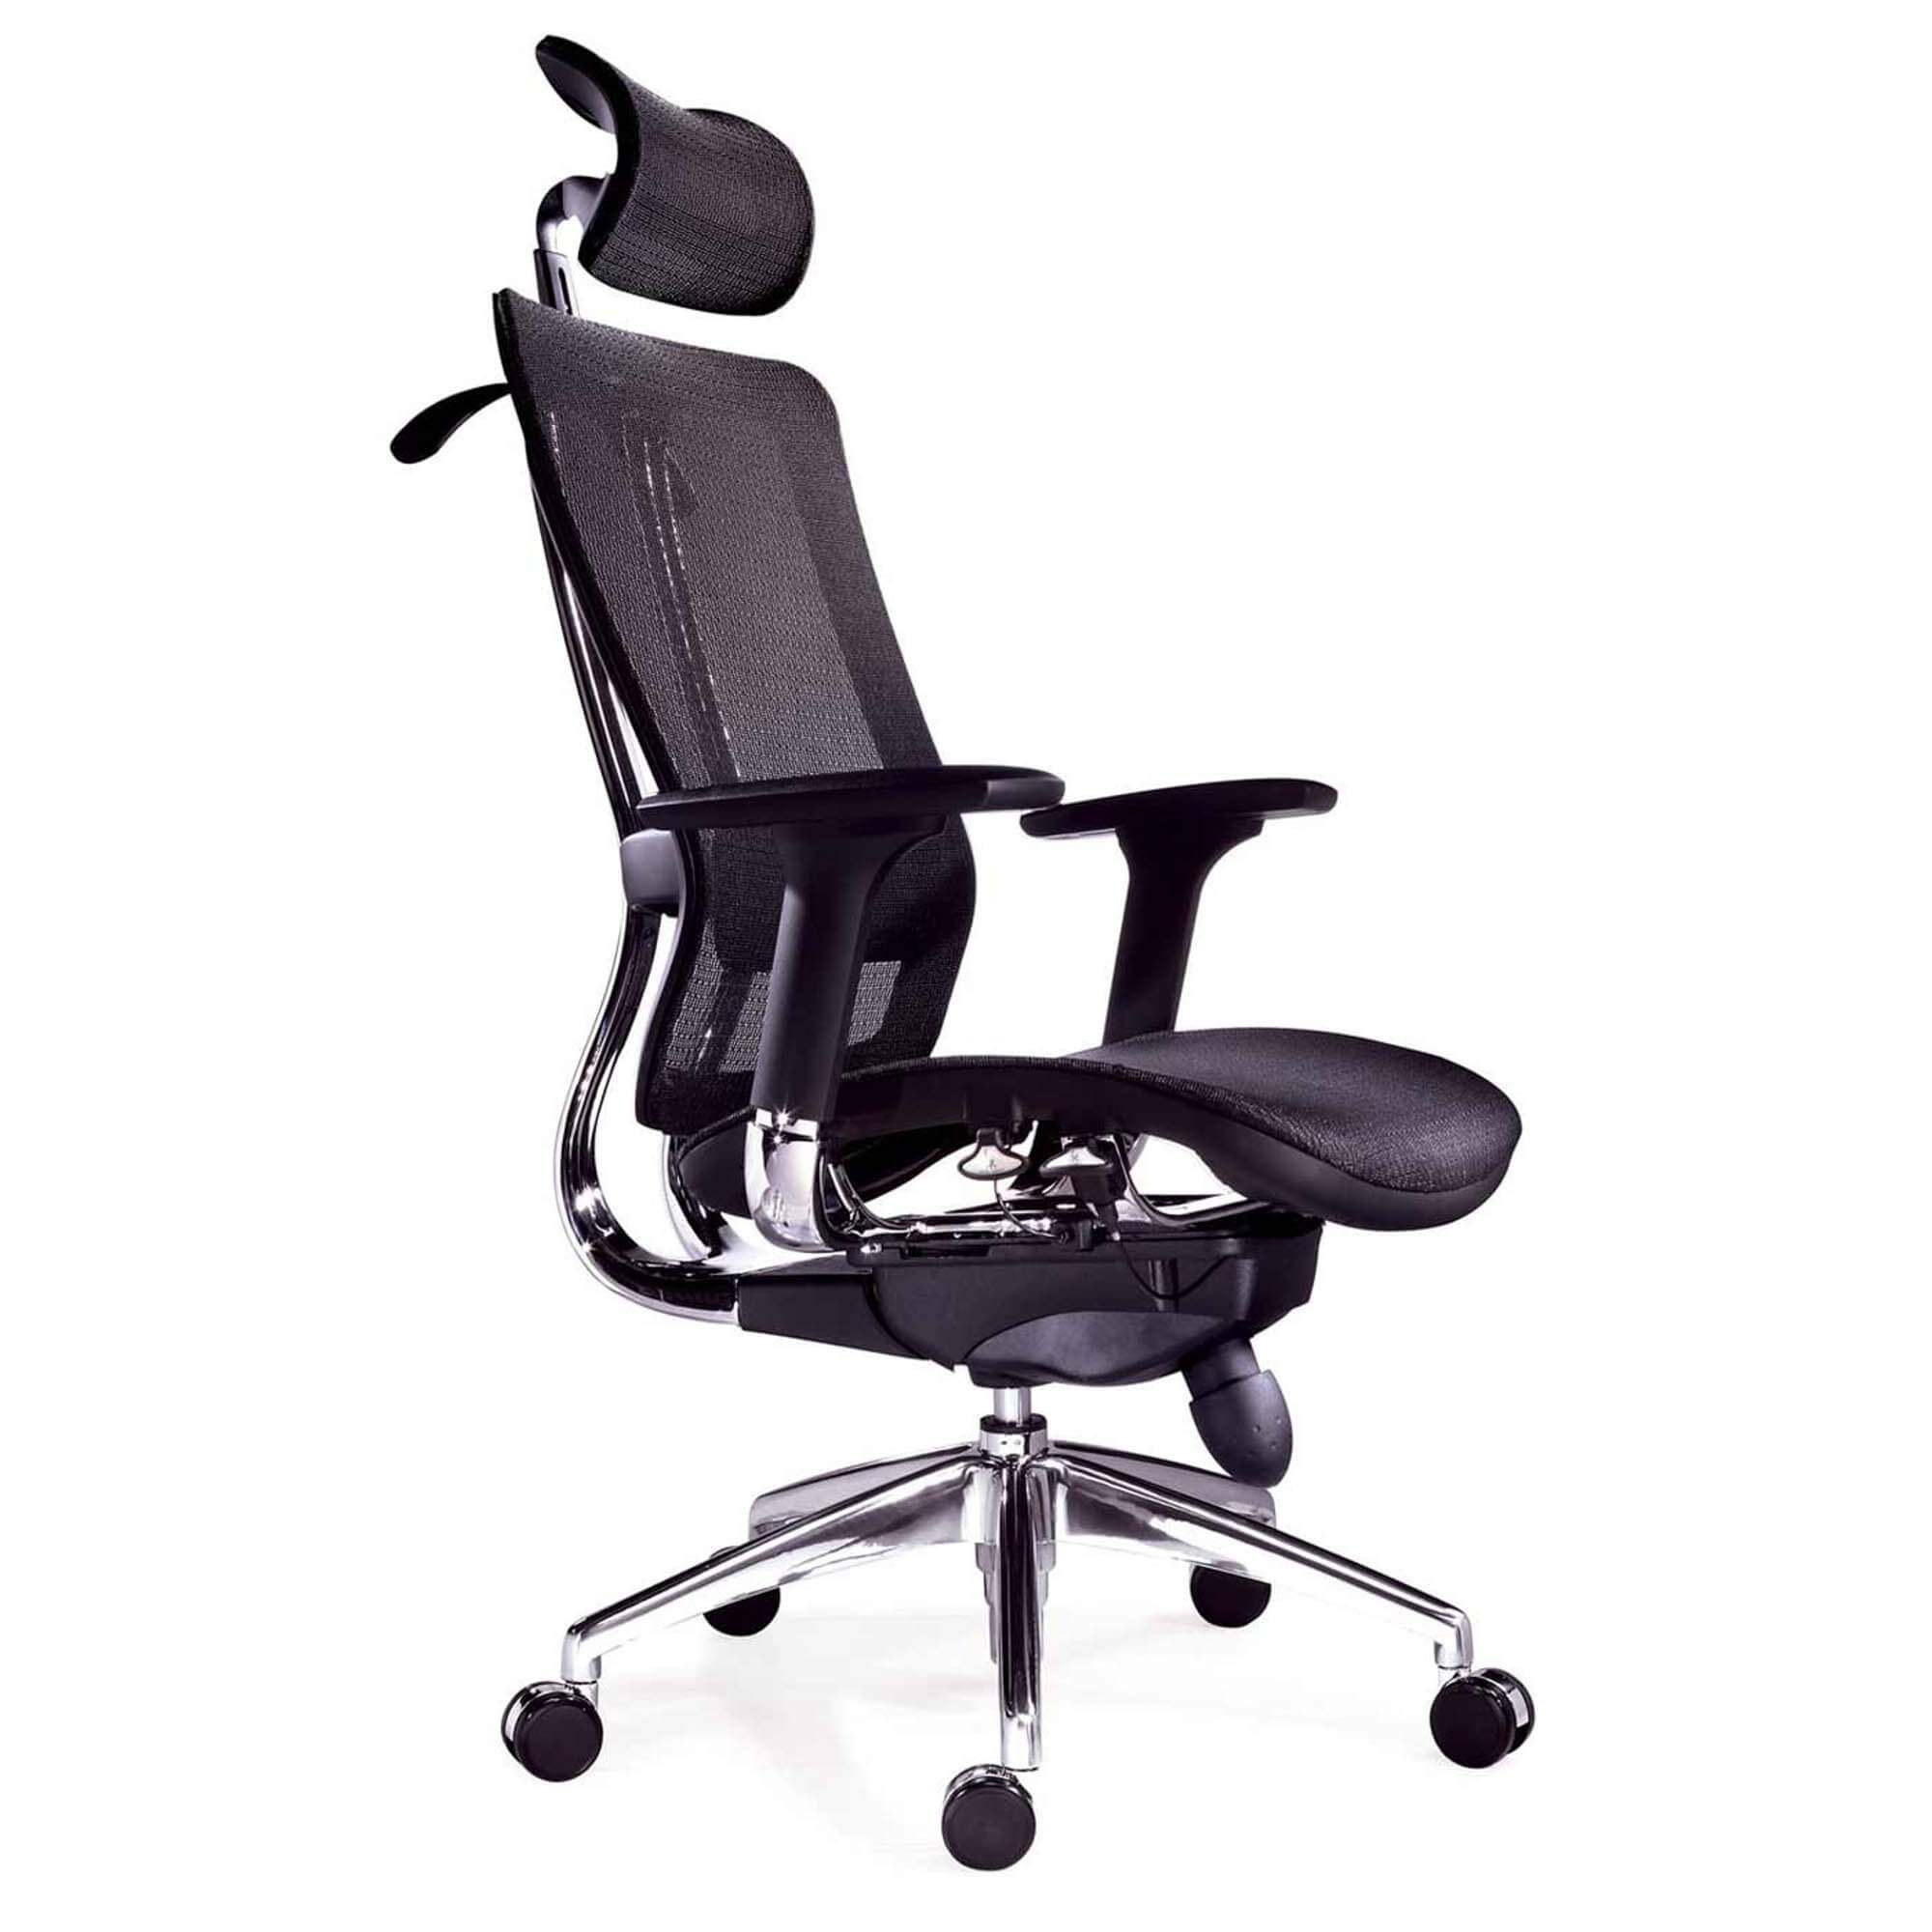 Most Ergonomic Office Chair Are Ergonomic Office Chairs Better Than Normal Chairs Quora